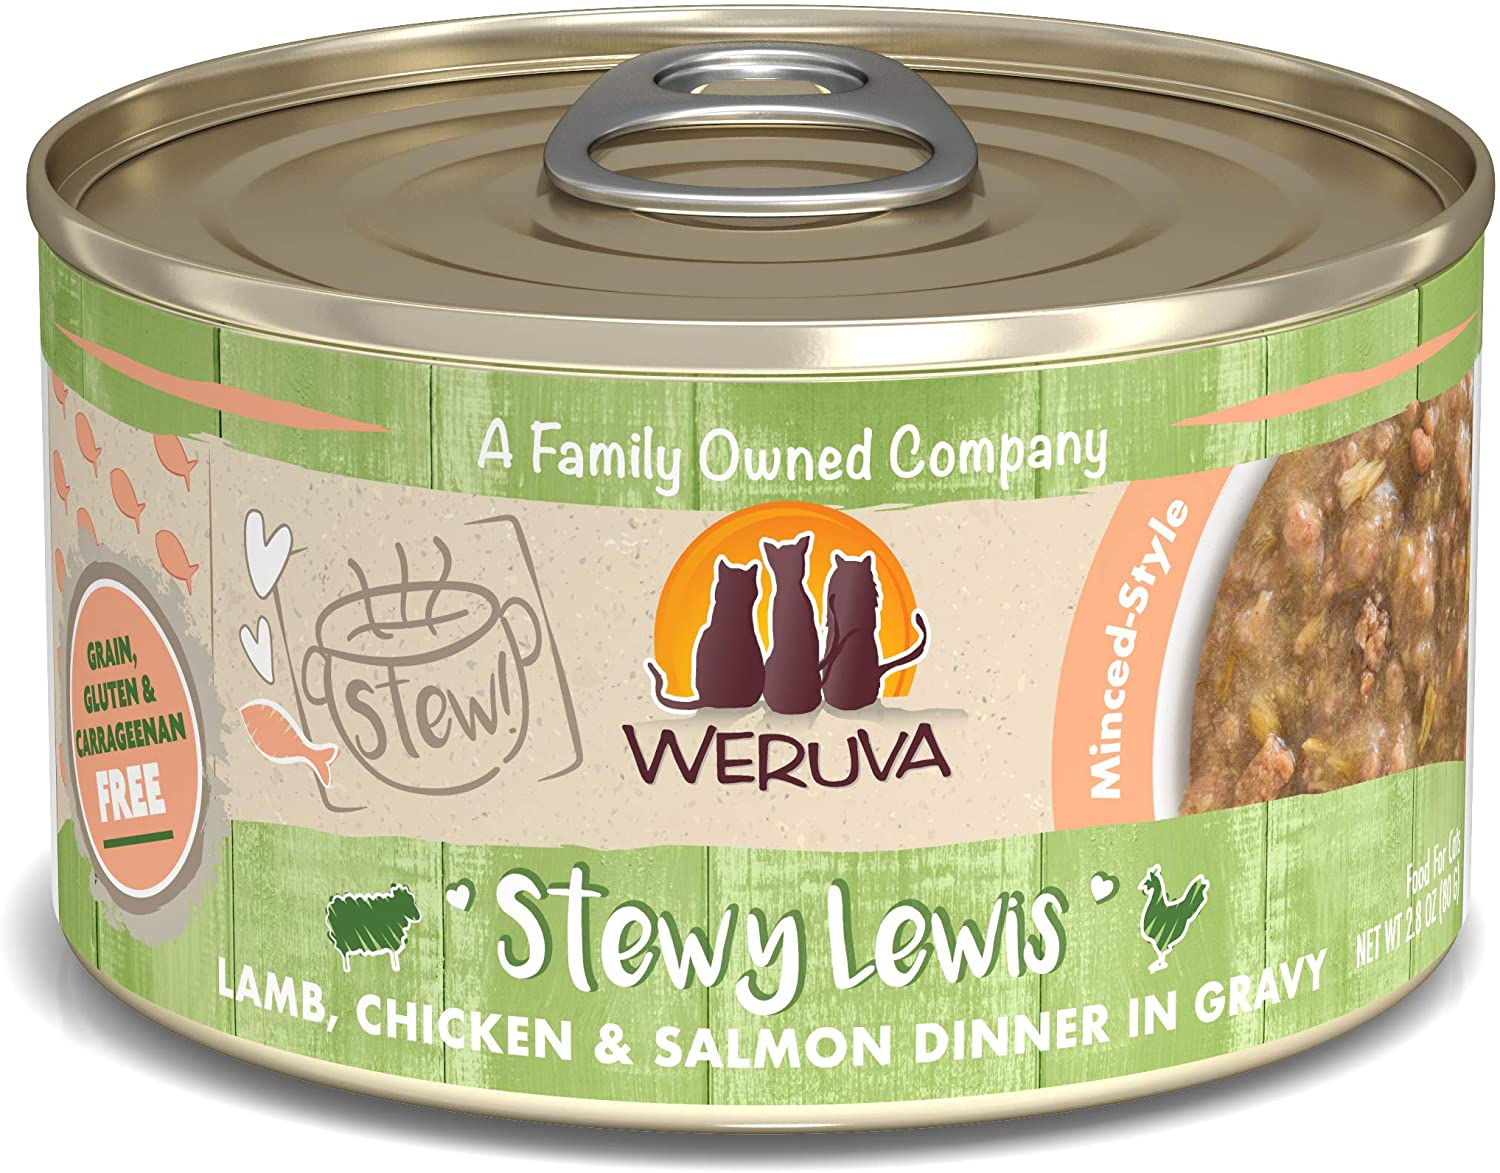 Weruva Classic Cat Stews!, Stewy Lewis with Lamb, Chicken & Salmon in Gravy, 2.8oz Can (Pack of 12)